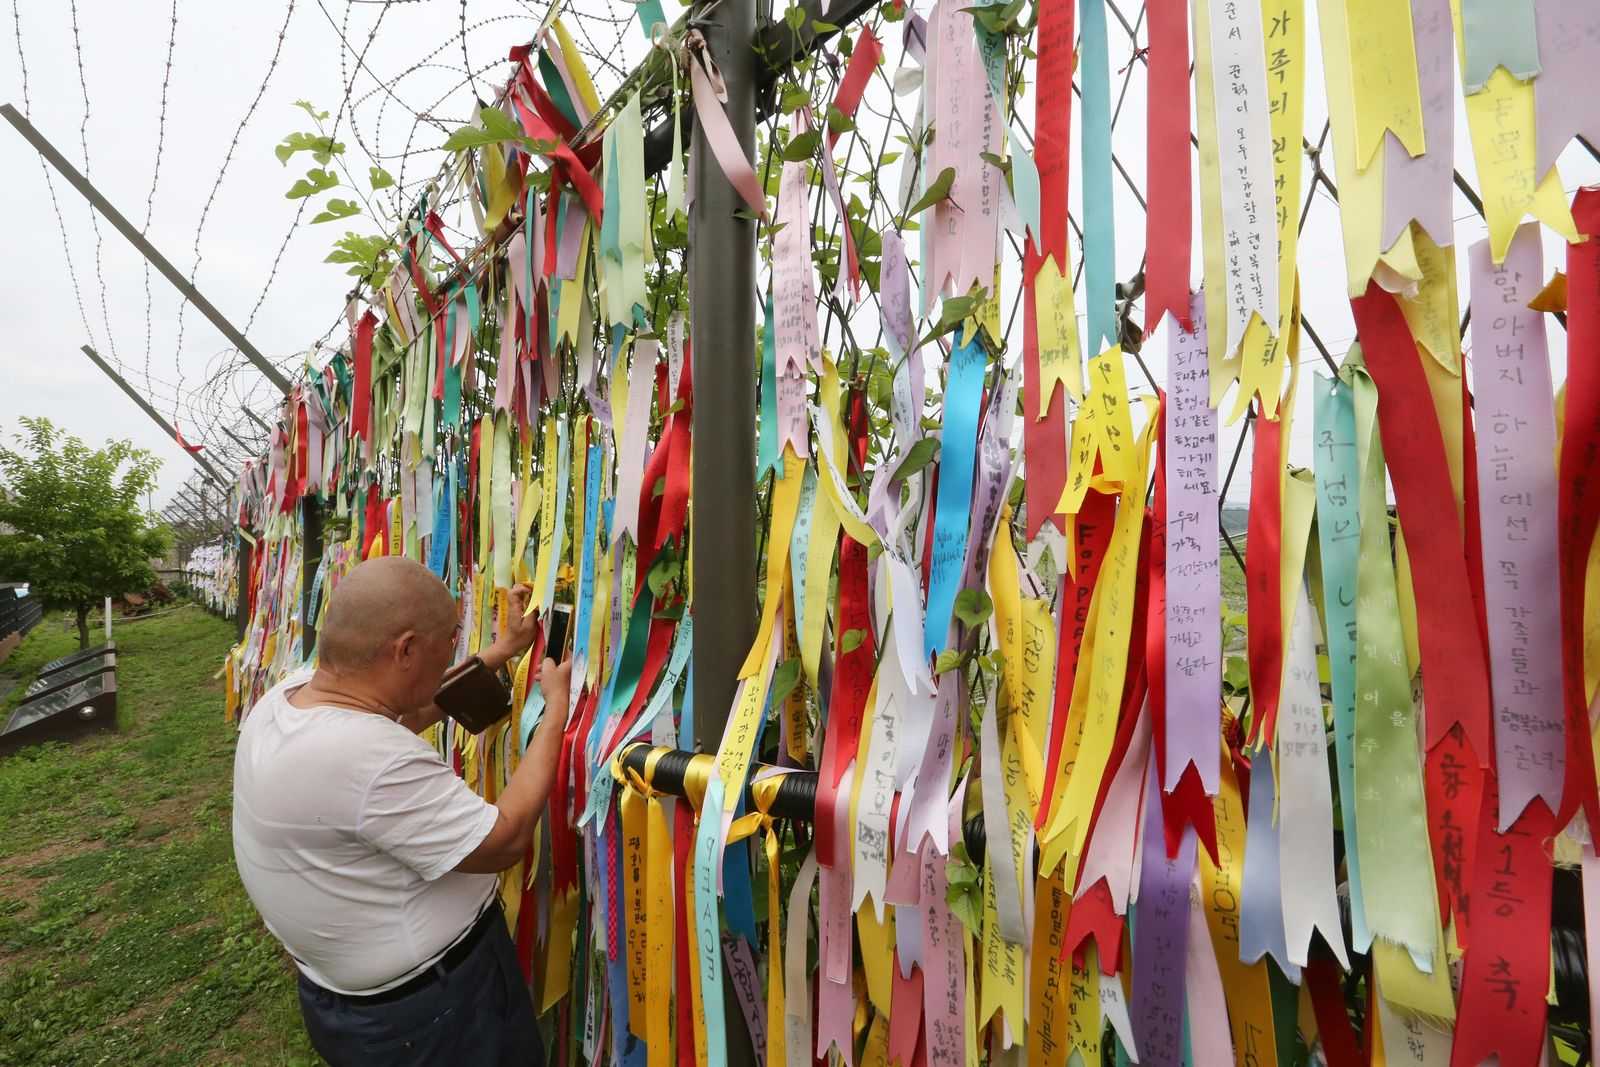 A visitor takes photos through a wire fence decorated with ribbons written with messages wishing for the reunification of the two Koreas at the Imjingak Pavilion, near the demilitarized zone of Panmunjom, in Paju, South Korea, Thursday, June 20, 2019.(AP Photo/Ahn Young-joon)